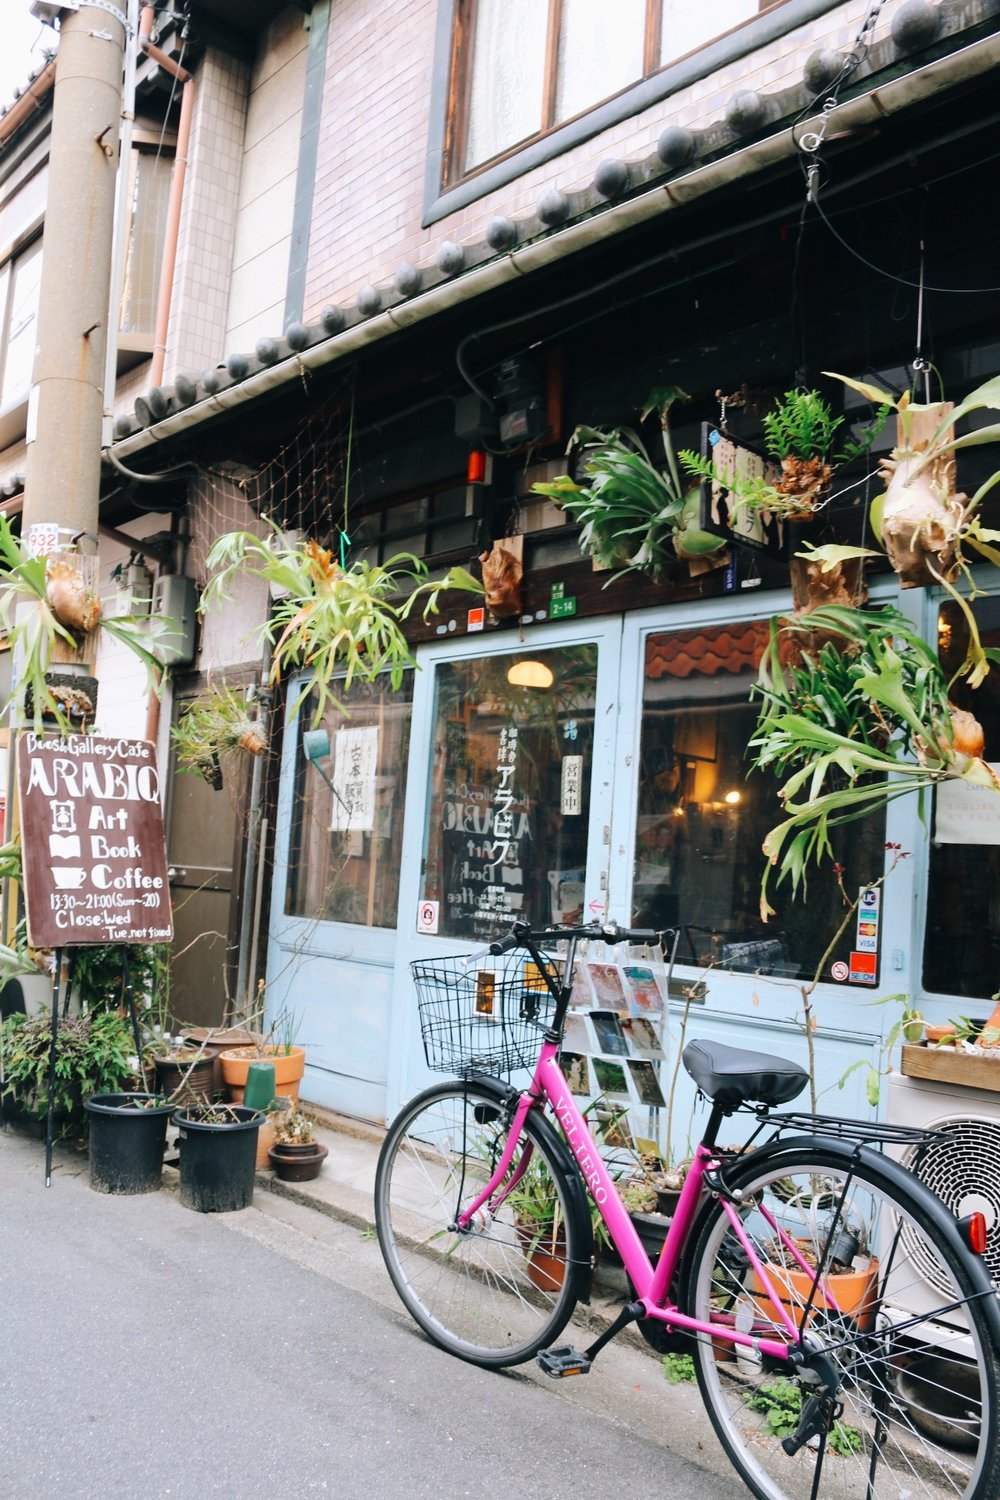 Cute little coffee shops everywhere you look in Nakazakicho